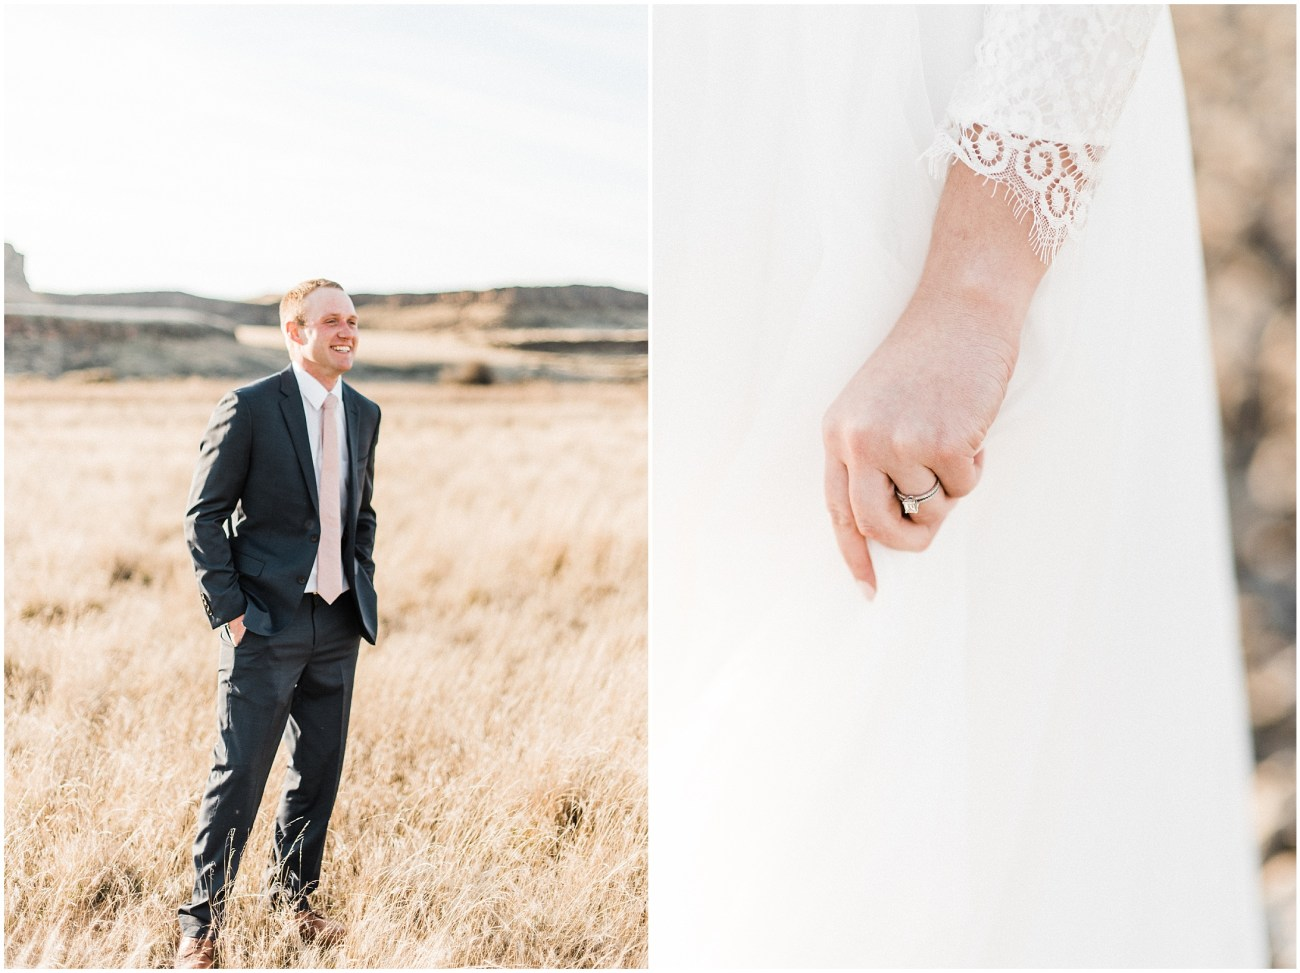 Diptych of Central Washington Desert Bridal Session by Forthright Photo